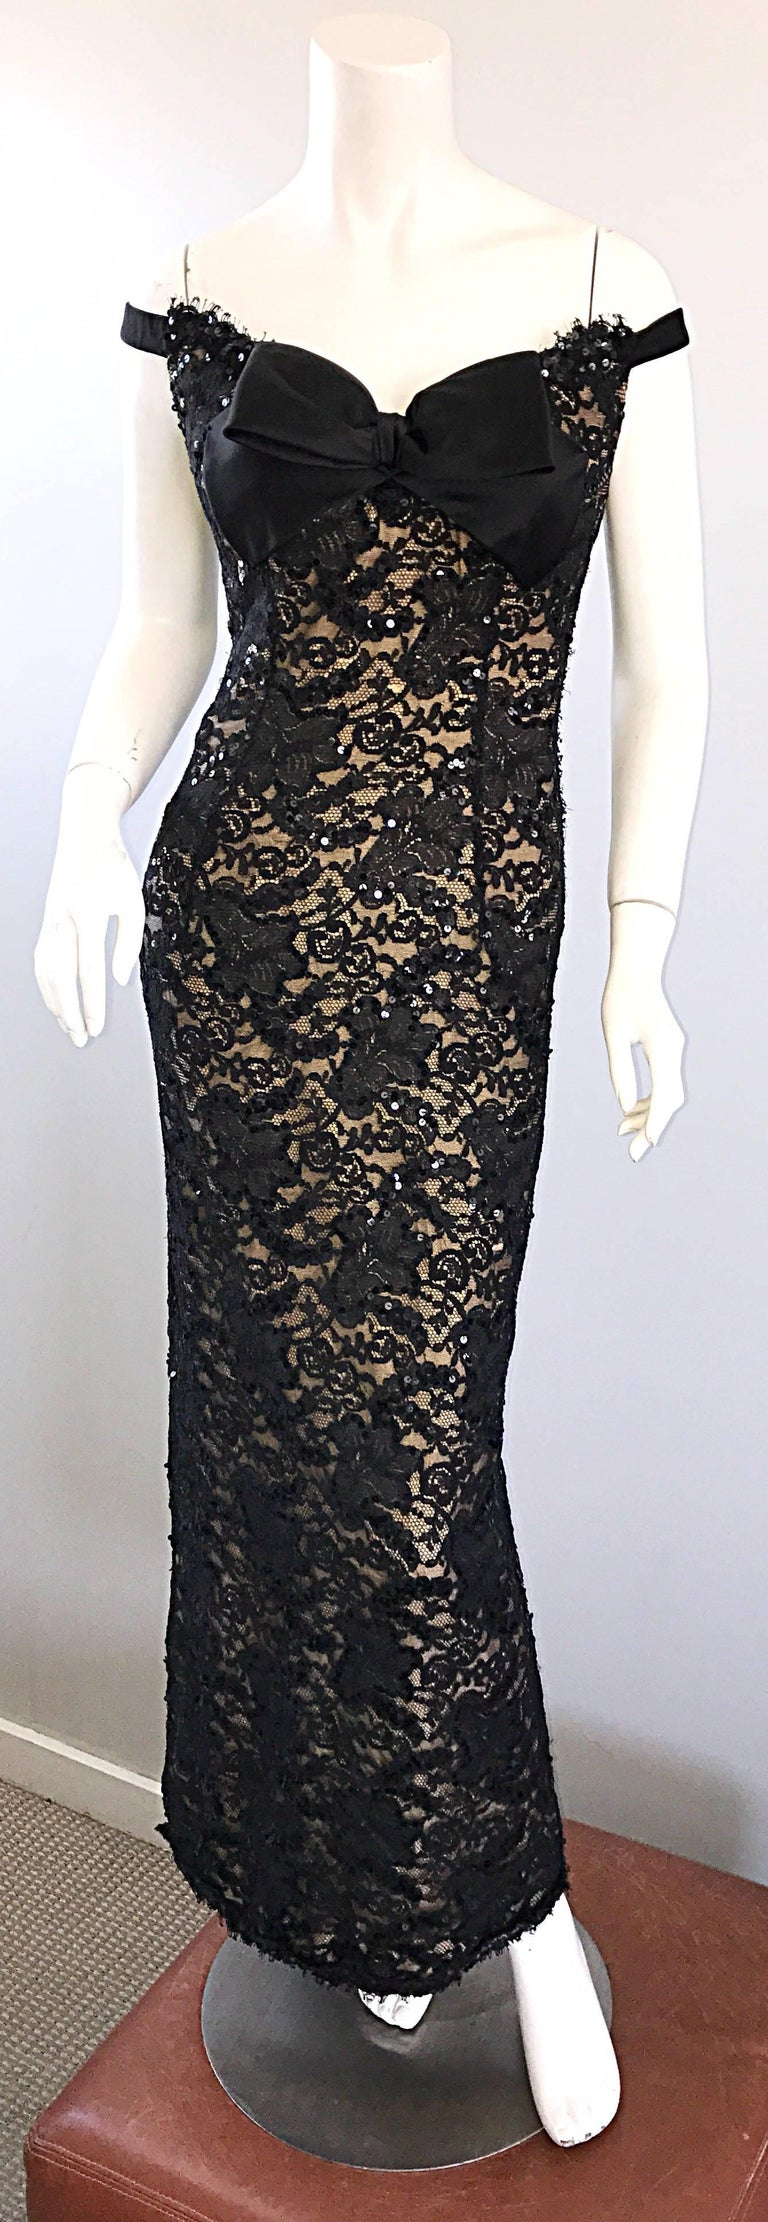 Vintage Bob Mackie Black Lace Sequin Size 8 1990s 90s Evening Off Shoulder Gown  For Sale 5